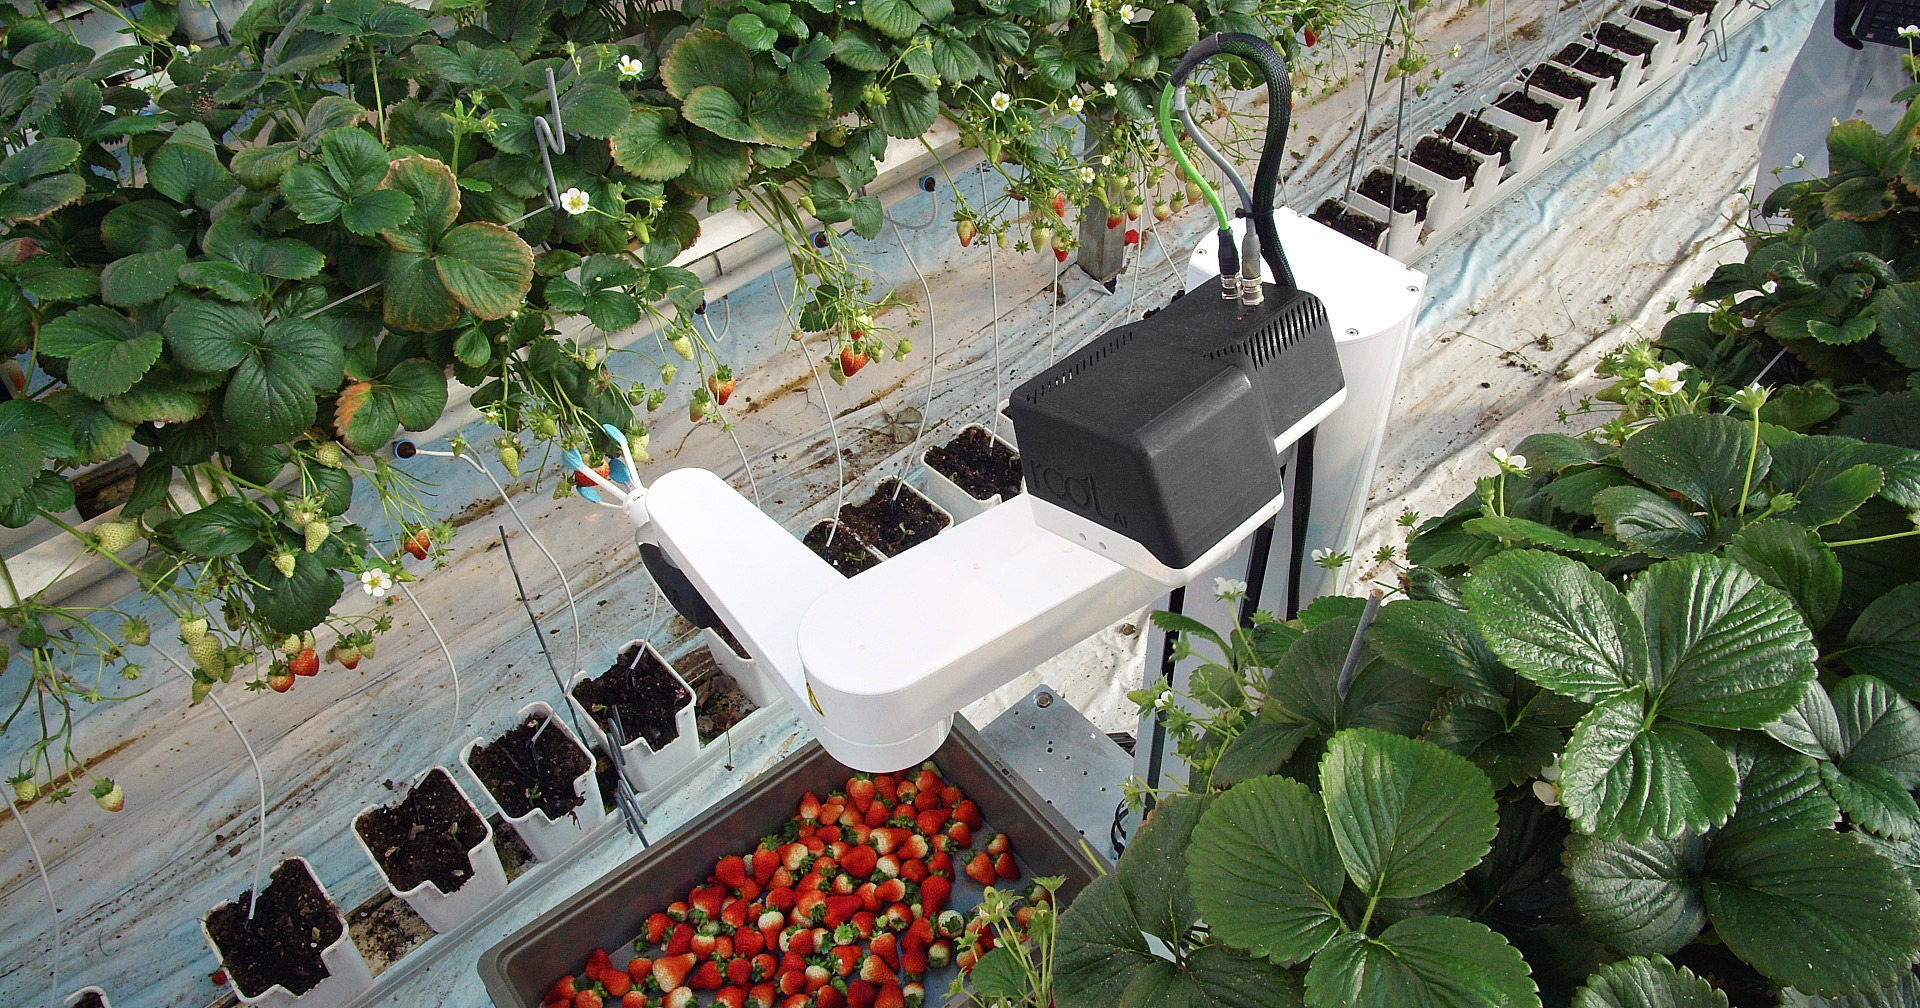 Root AI raises $7.2M seed round to deploy its harvesting robot amid COVID-19-fueled demand